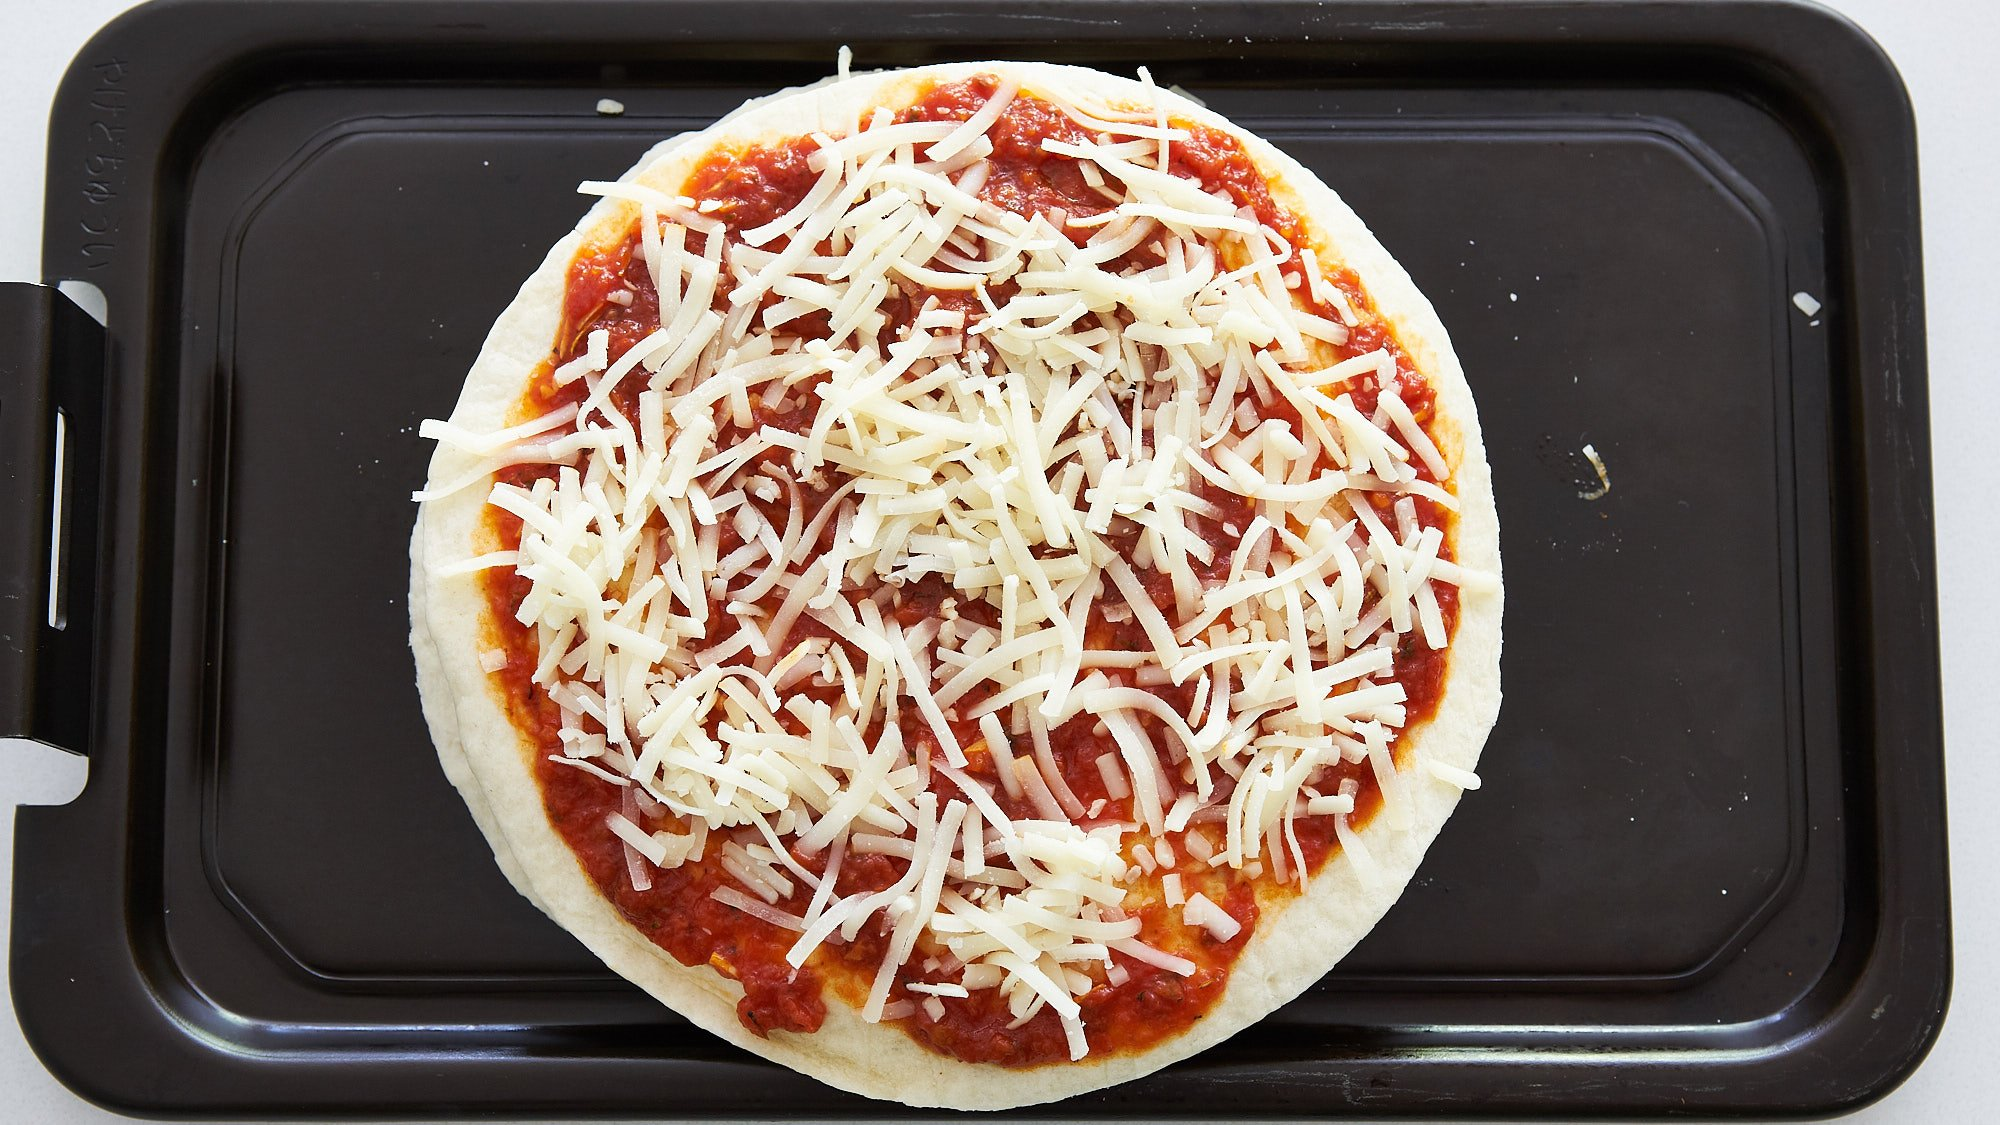 Another tortilla and pizza sauce go on top, along with another layer of cheese.